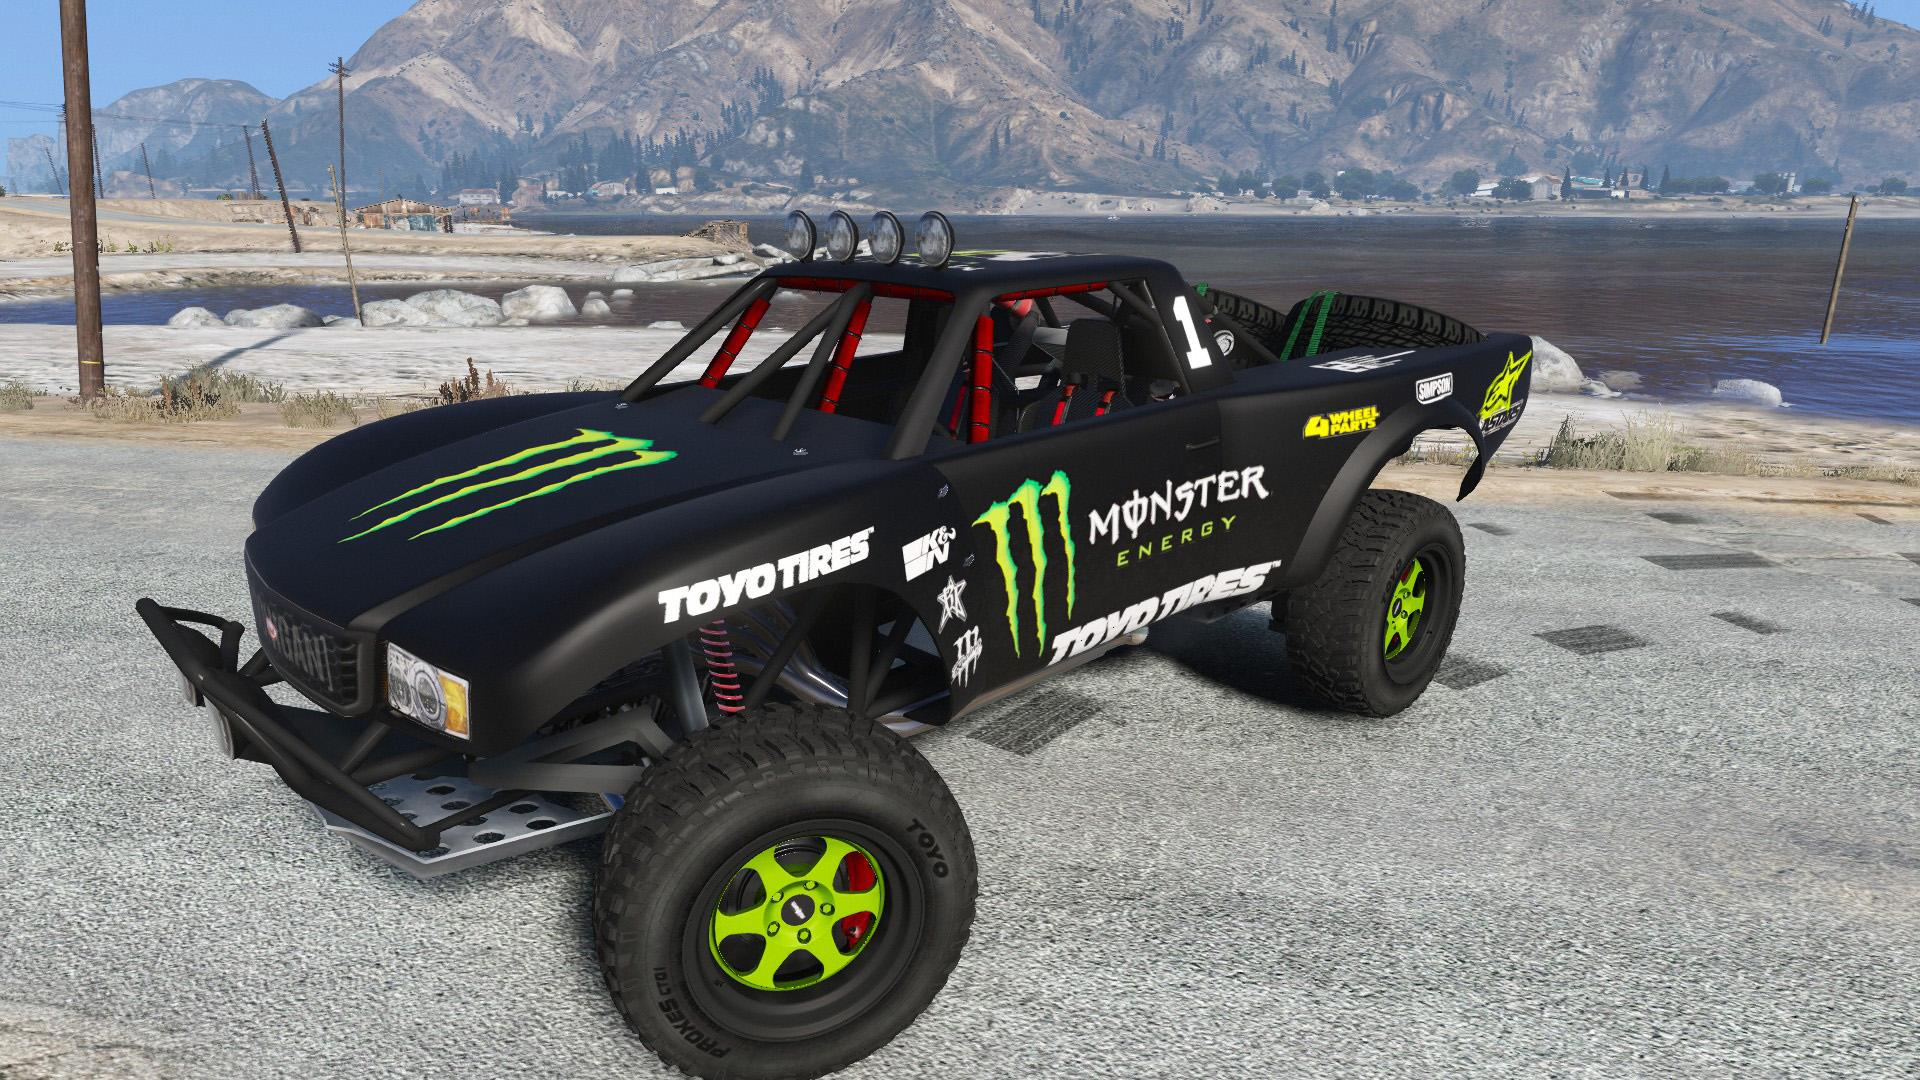 Trophy Truck Monster Energy Livery Any Color Gta5 Mods Com